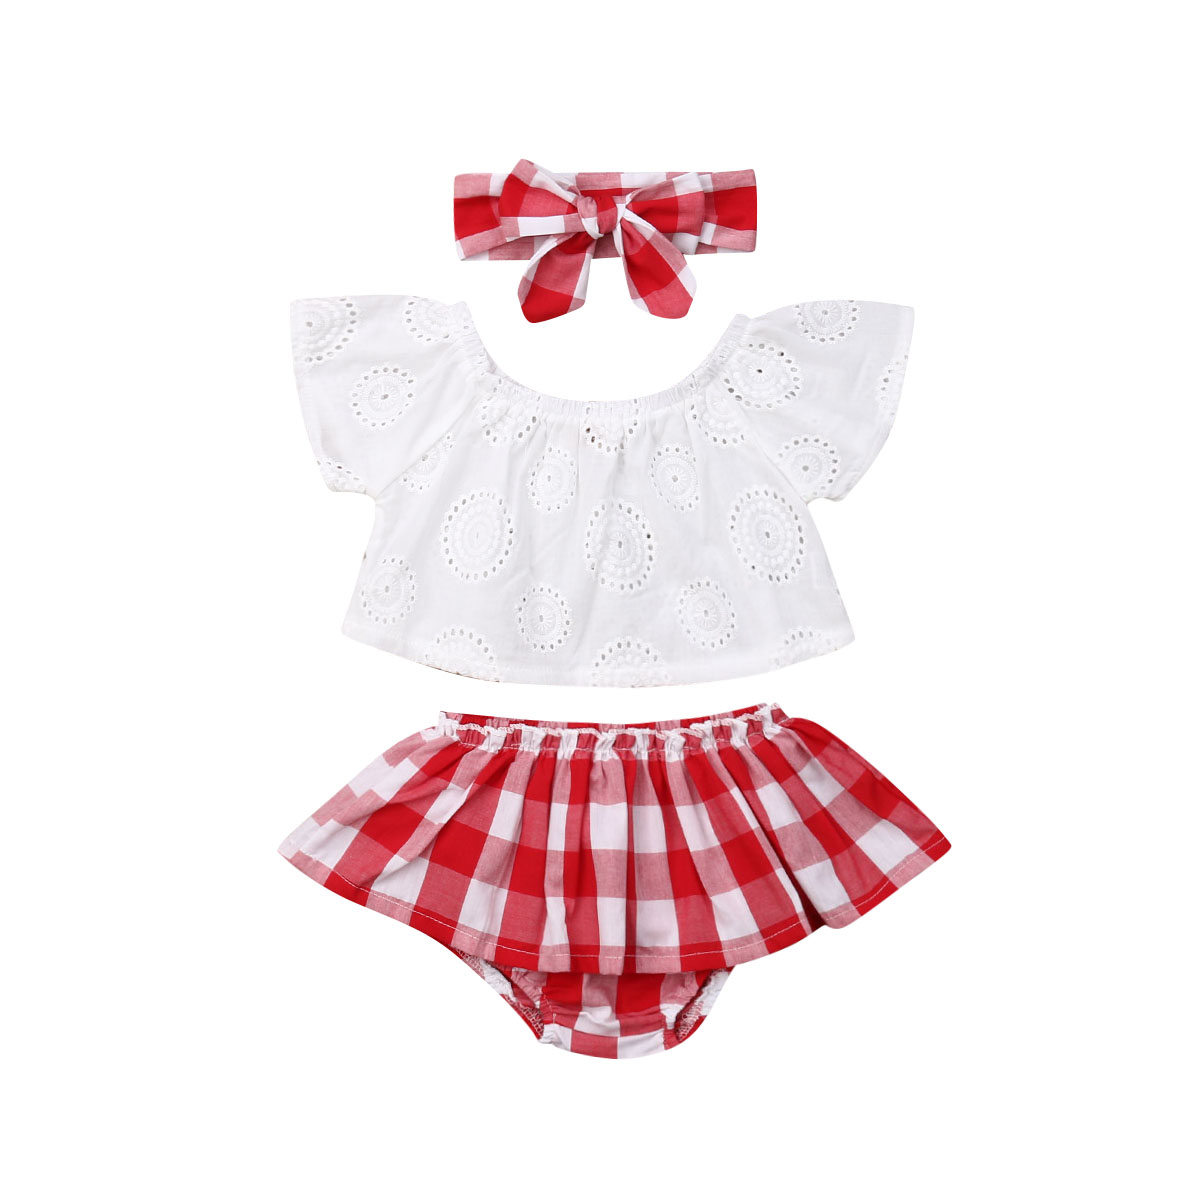 0-24M Infant Newborn Baby Girls Clothing Set White Off Shoulder T shirts + Red Plaid Skirts + Headband Summer Baby Girl Costume